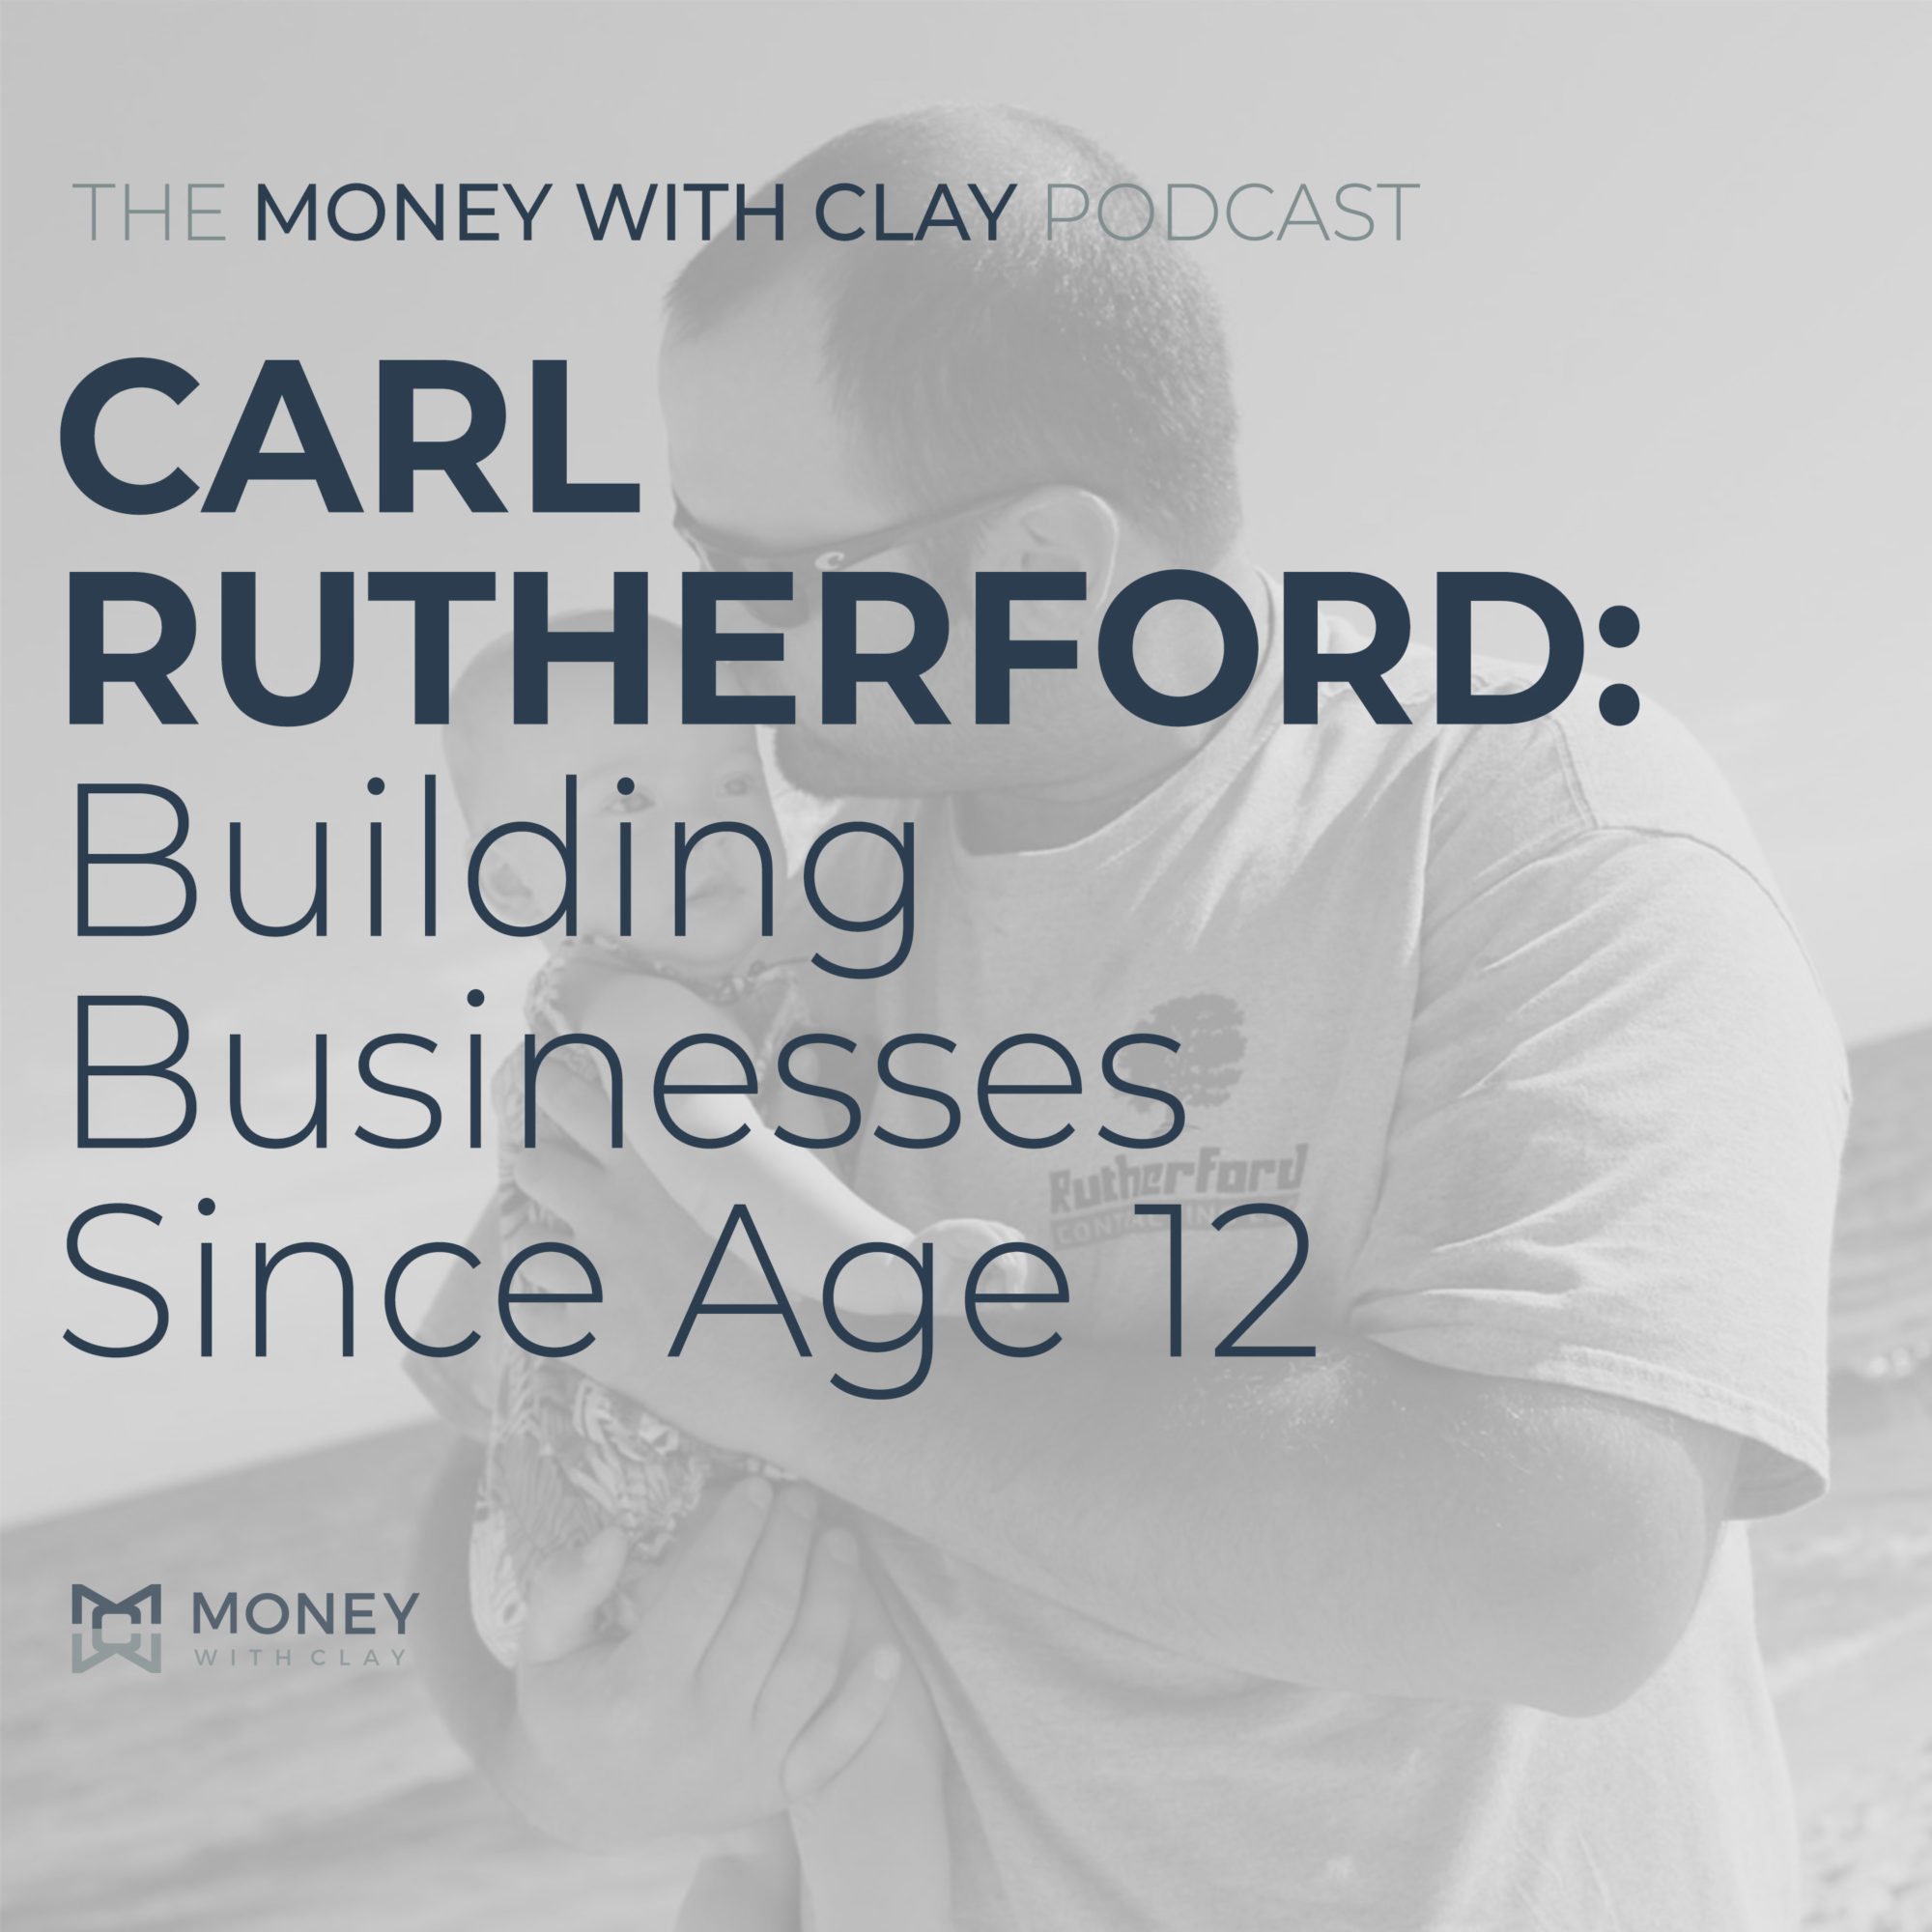 Carl Rutherford: Building Businesses Since Age 12